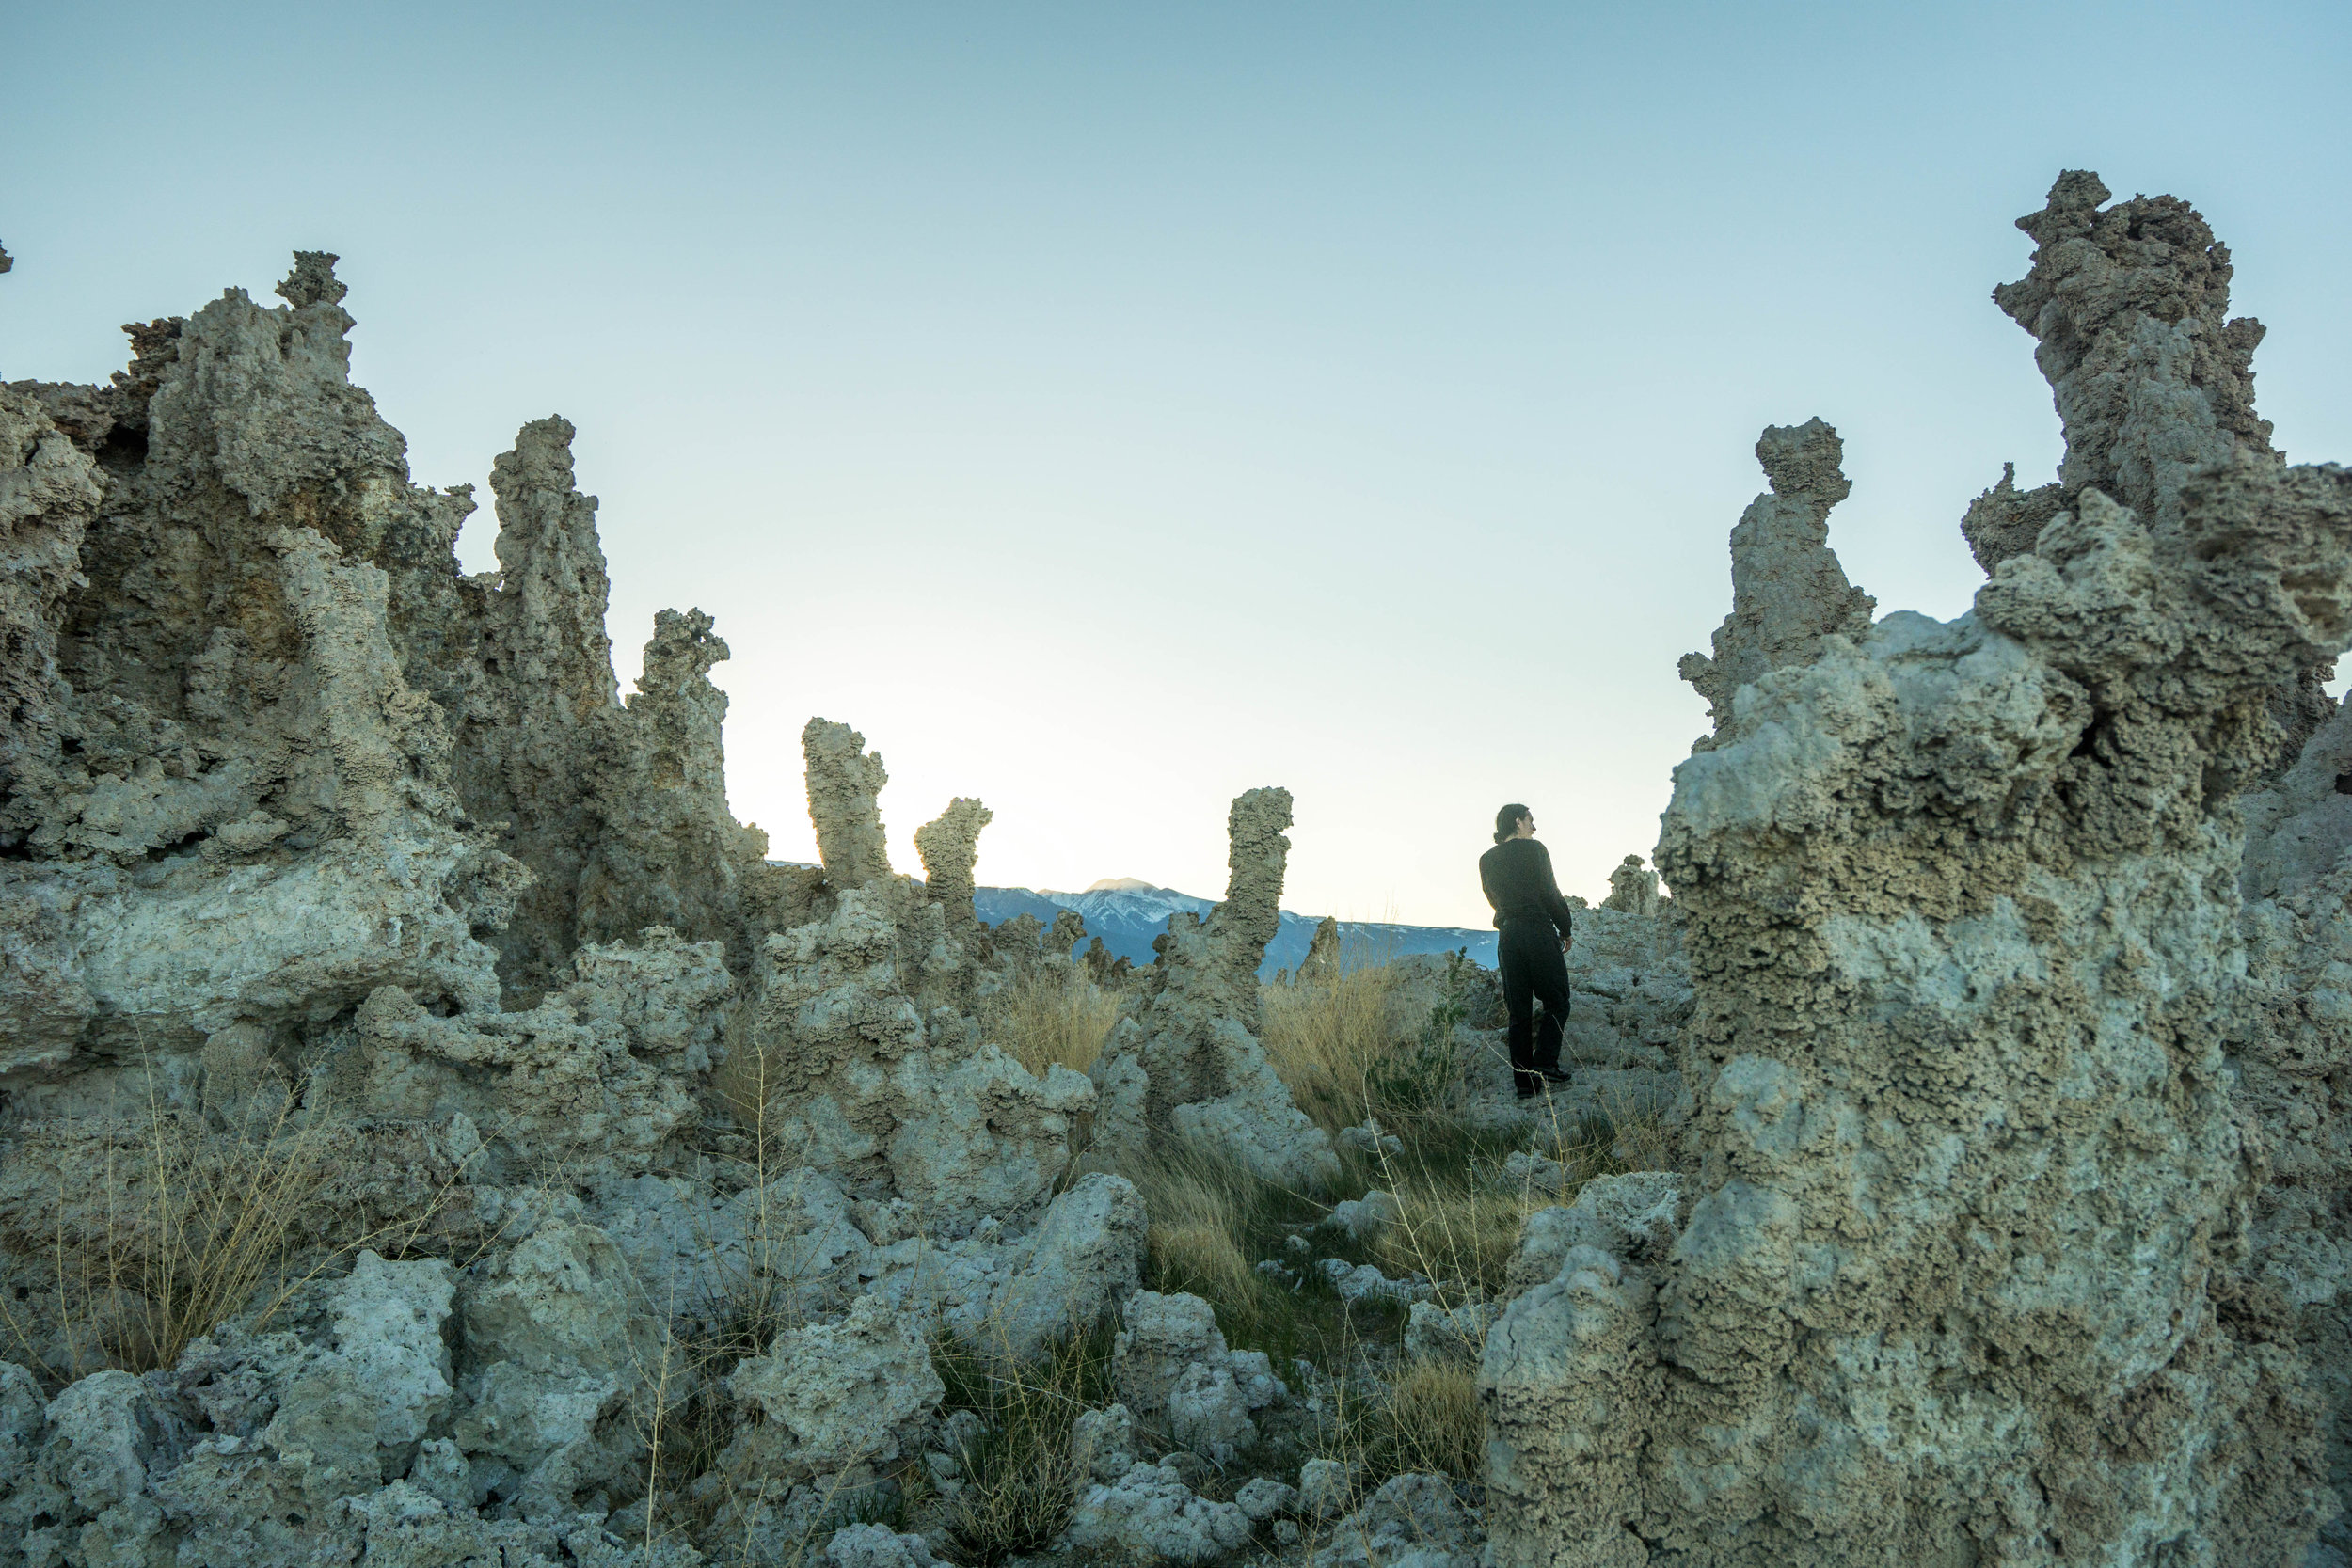 Once again striking out with the fish, we race against time to make it to Mono Lake before sunset.